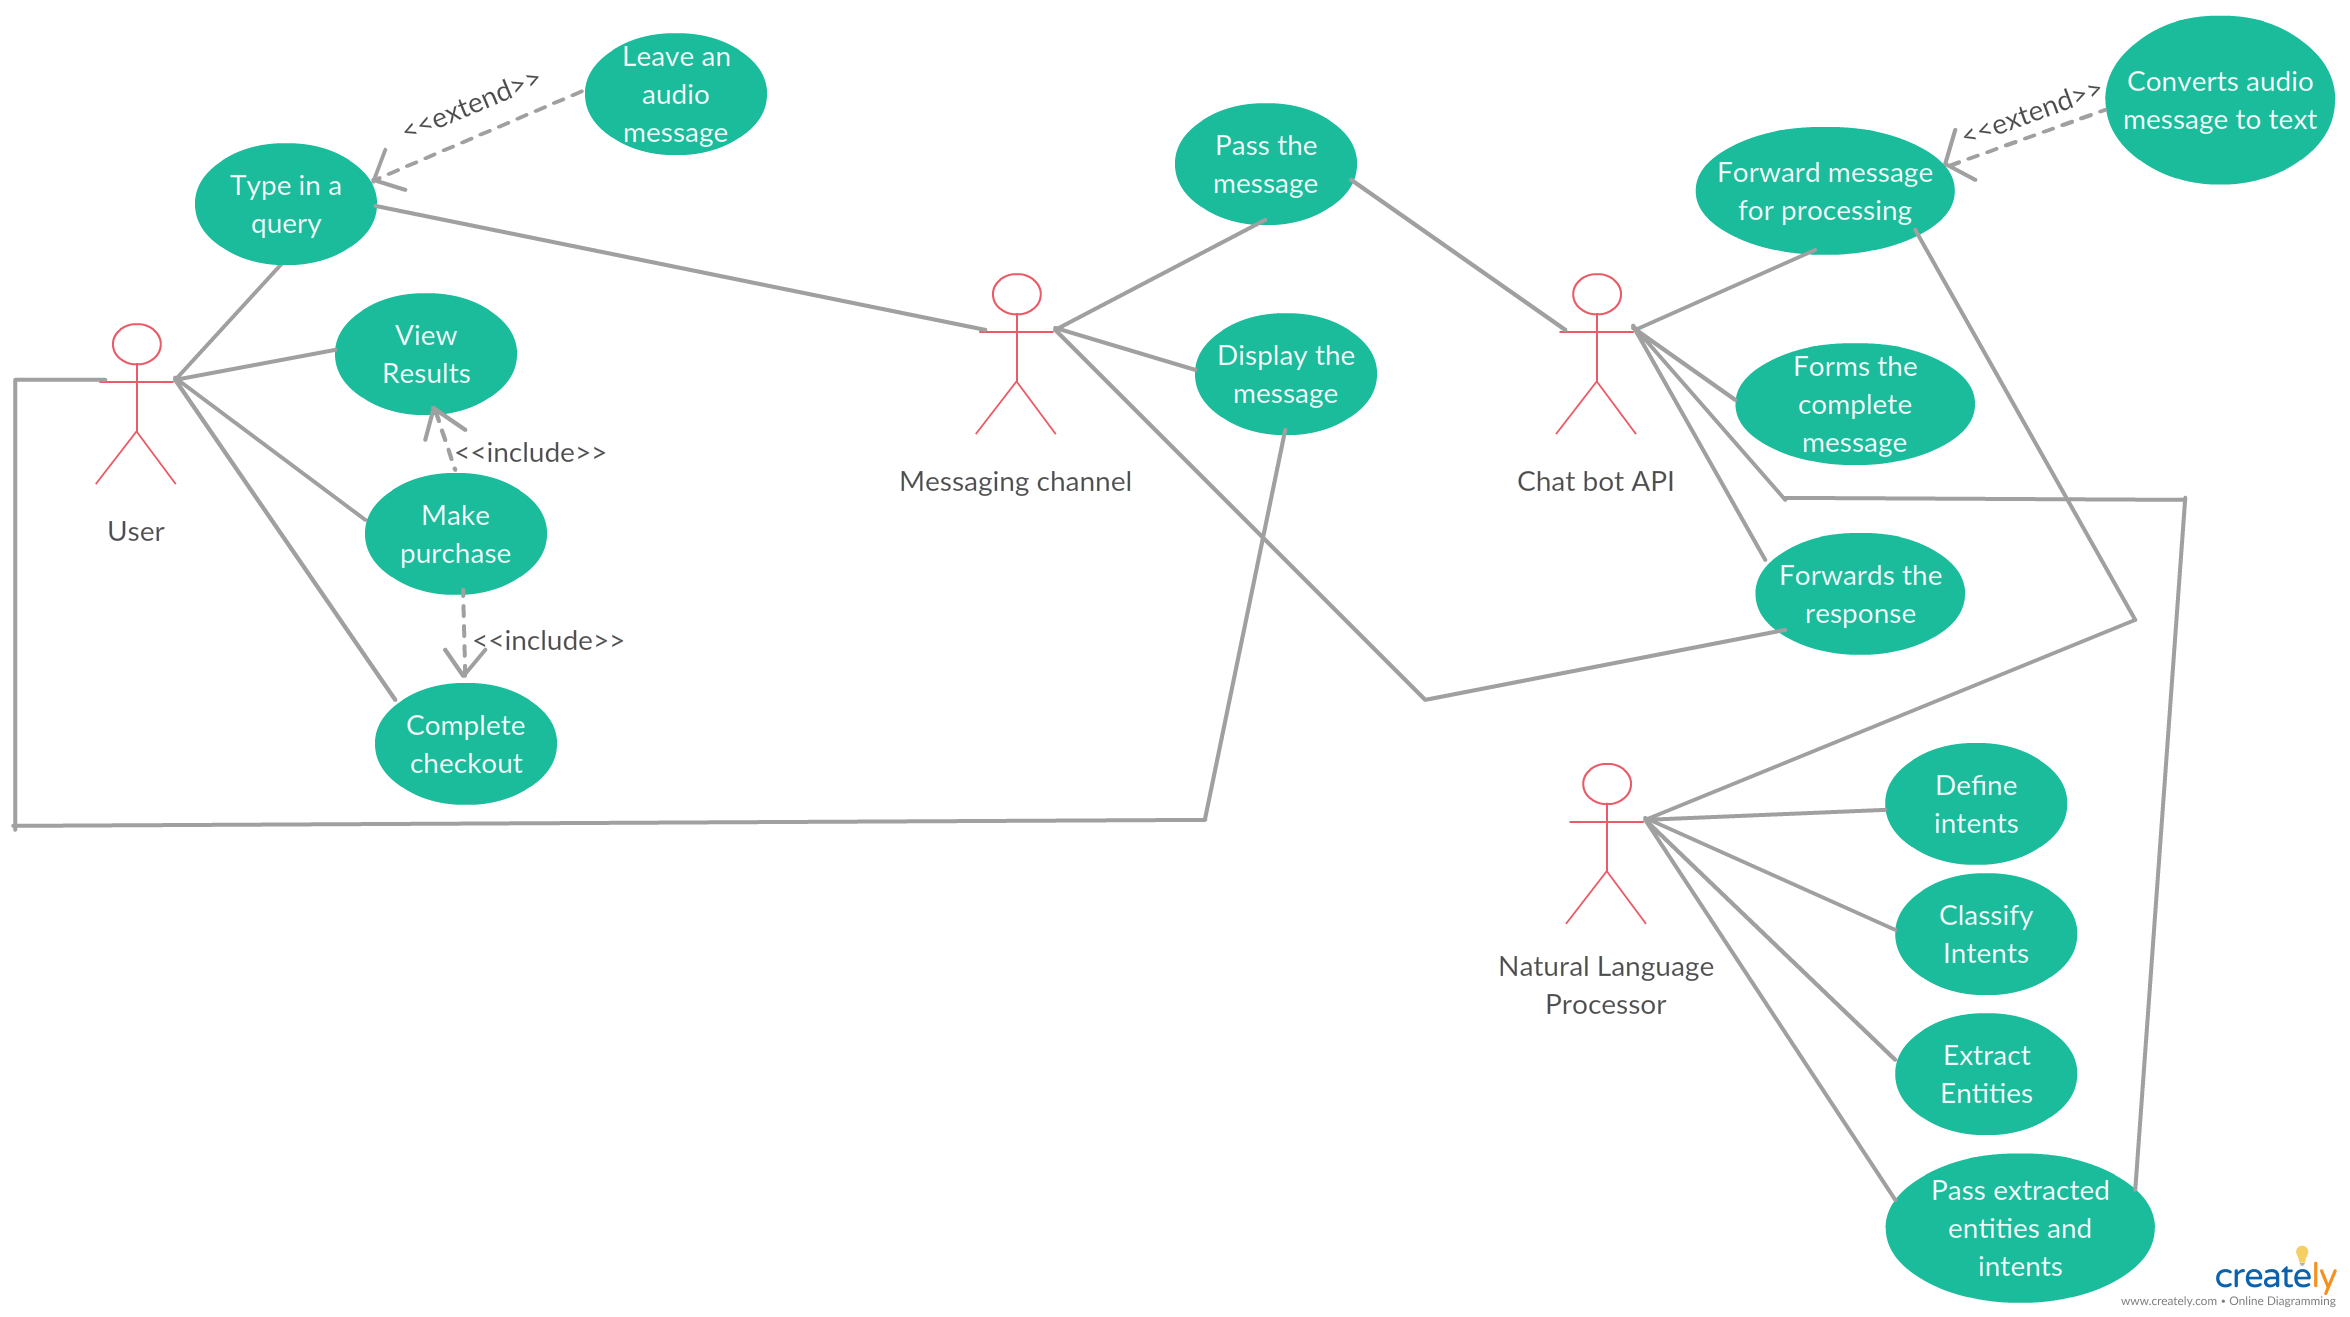 Chatbot Use Case Diagram Use Case Diagram For Chatbot Shows How A Message Chatbot Functions You Can Use This Example Diagram Use Case Diagram Design Chatbot